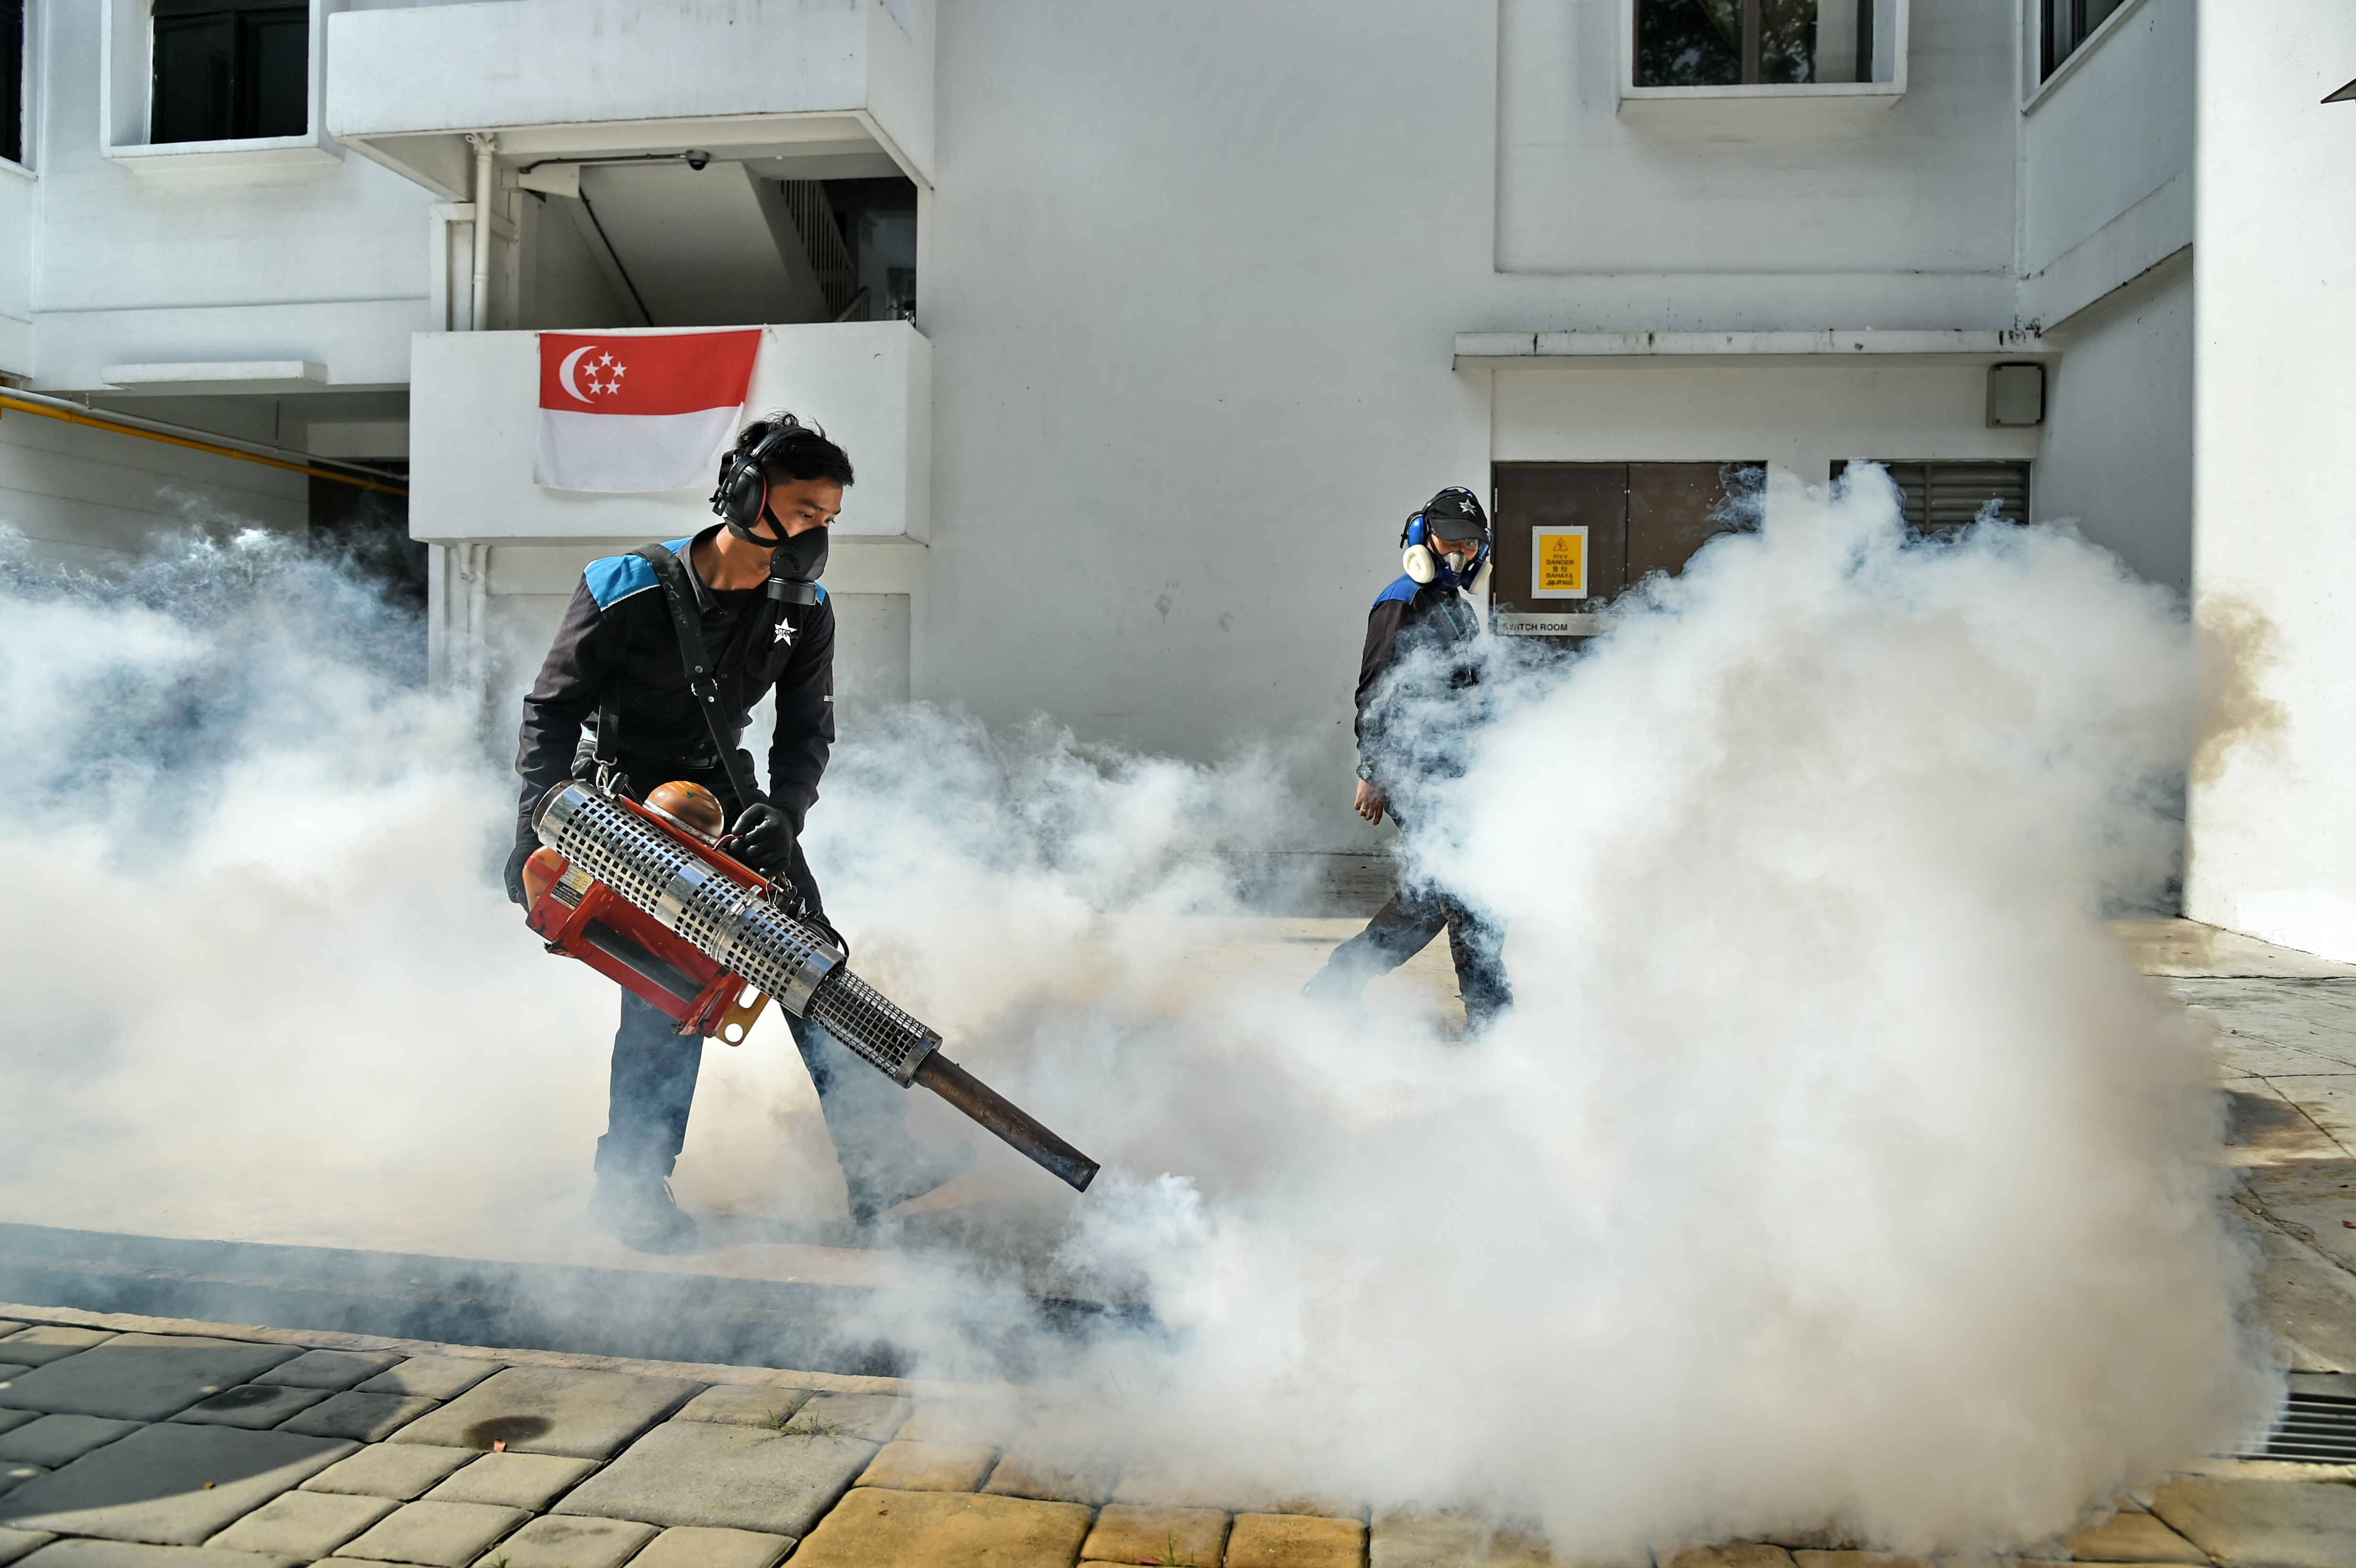 Pest control staff fumigate the drainage at the Macpherson neighbourhood housing estate in Singapore on August 31, 2016.